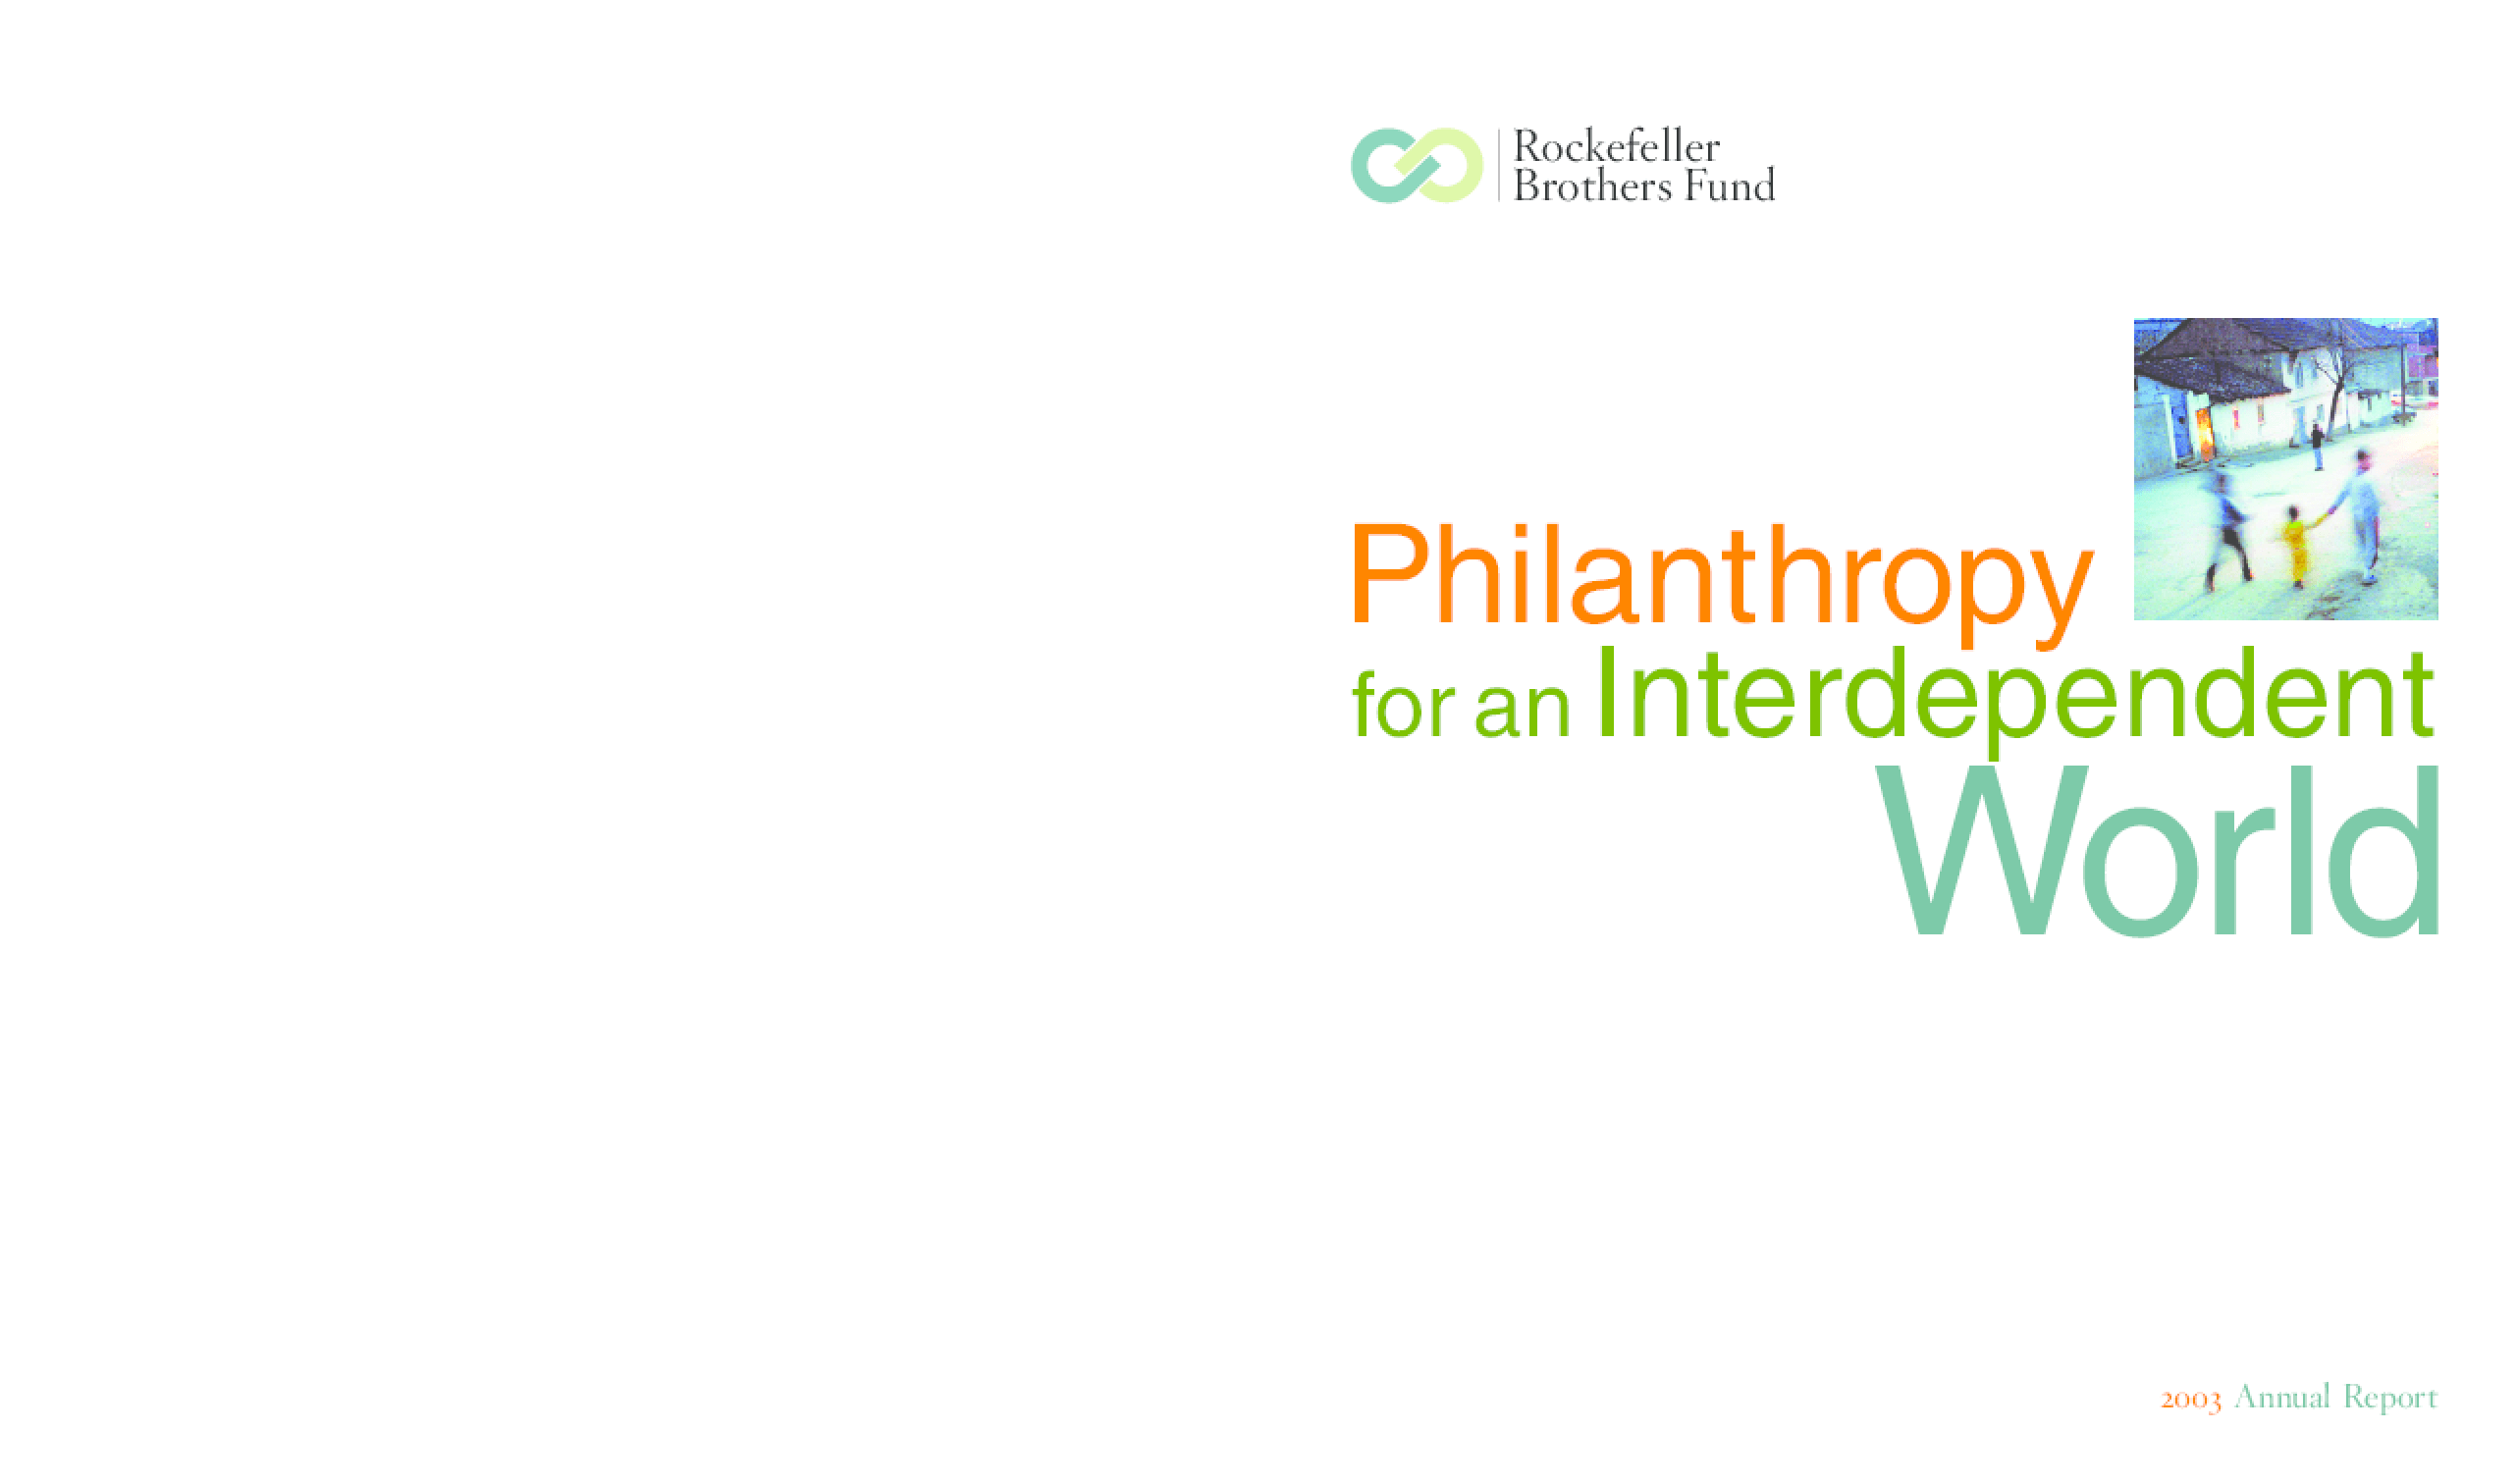 Rockefeller Brothers Fund - 2003 Annual Report: Philanthropy for an Interdependent World